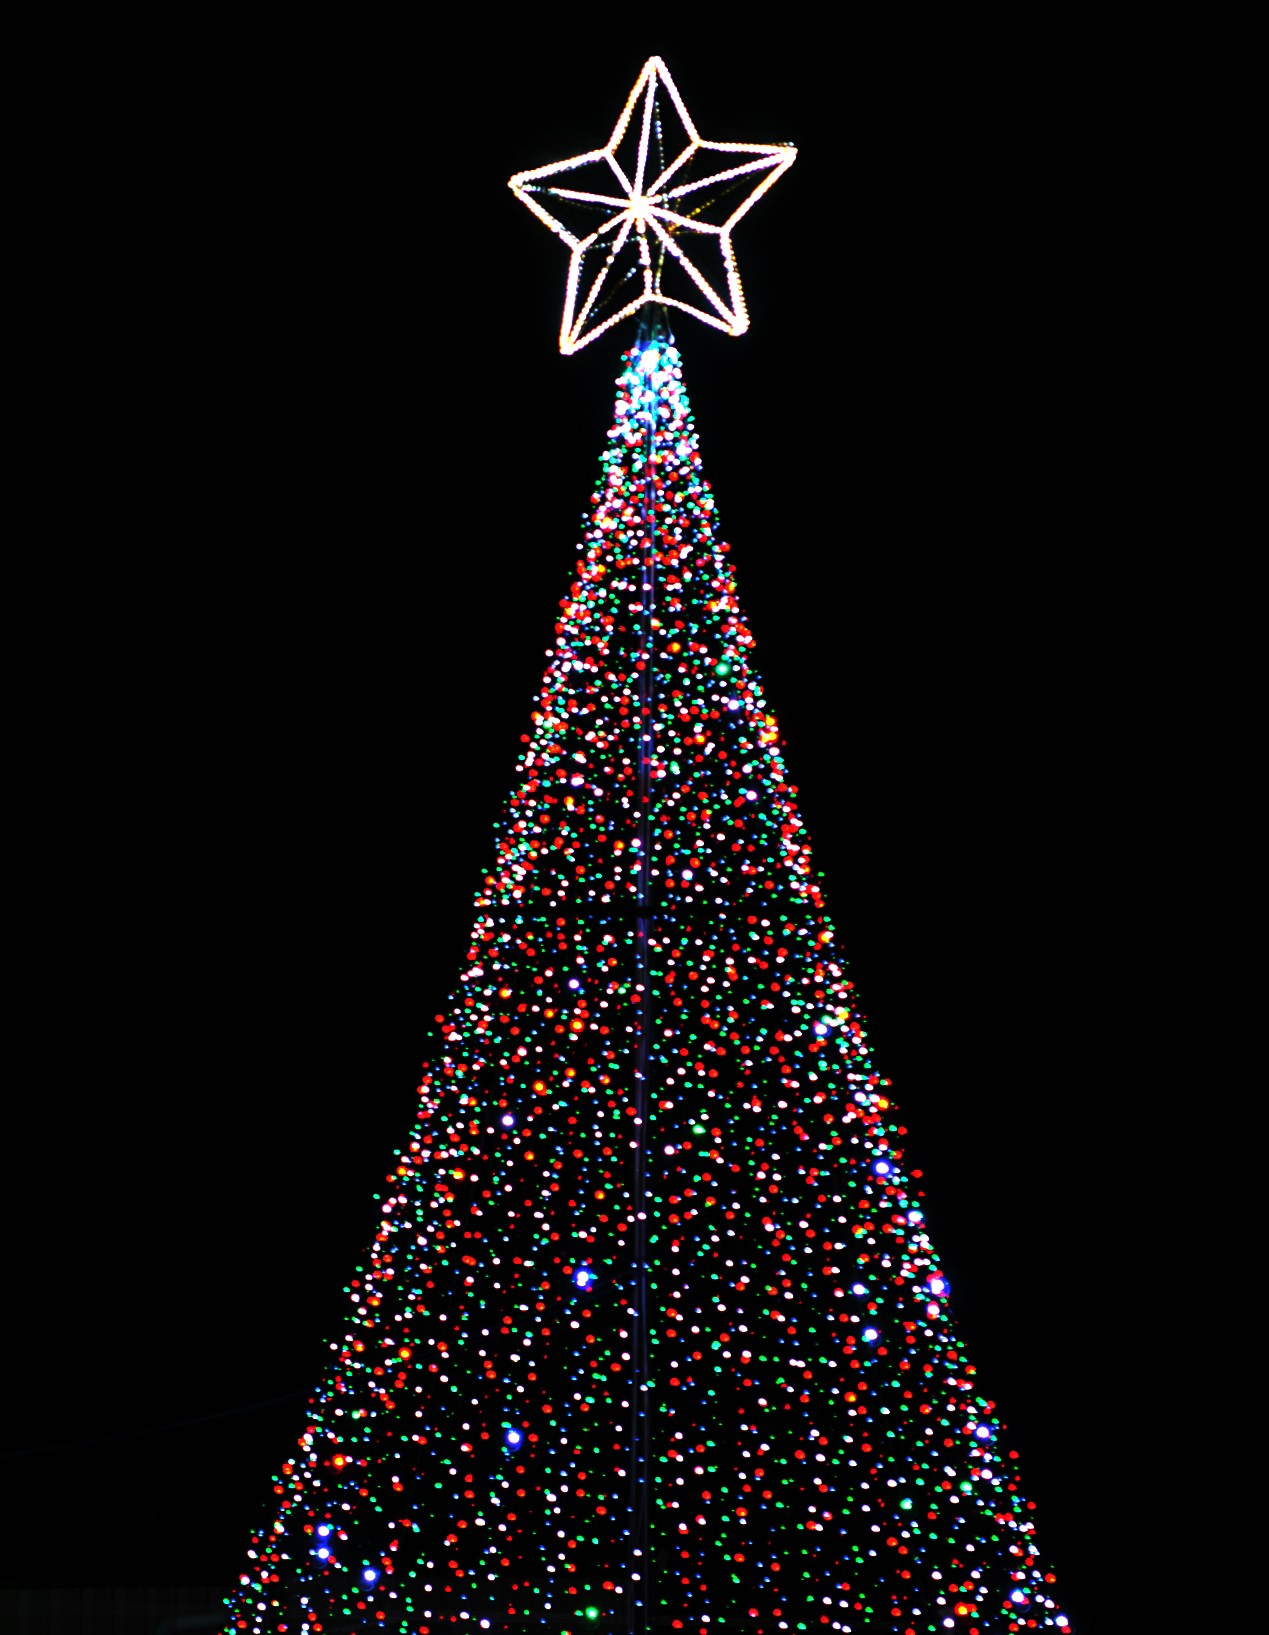 Christmas Tree Pictures High Resolution : Christmas trees photography contest pictures page